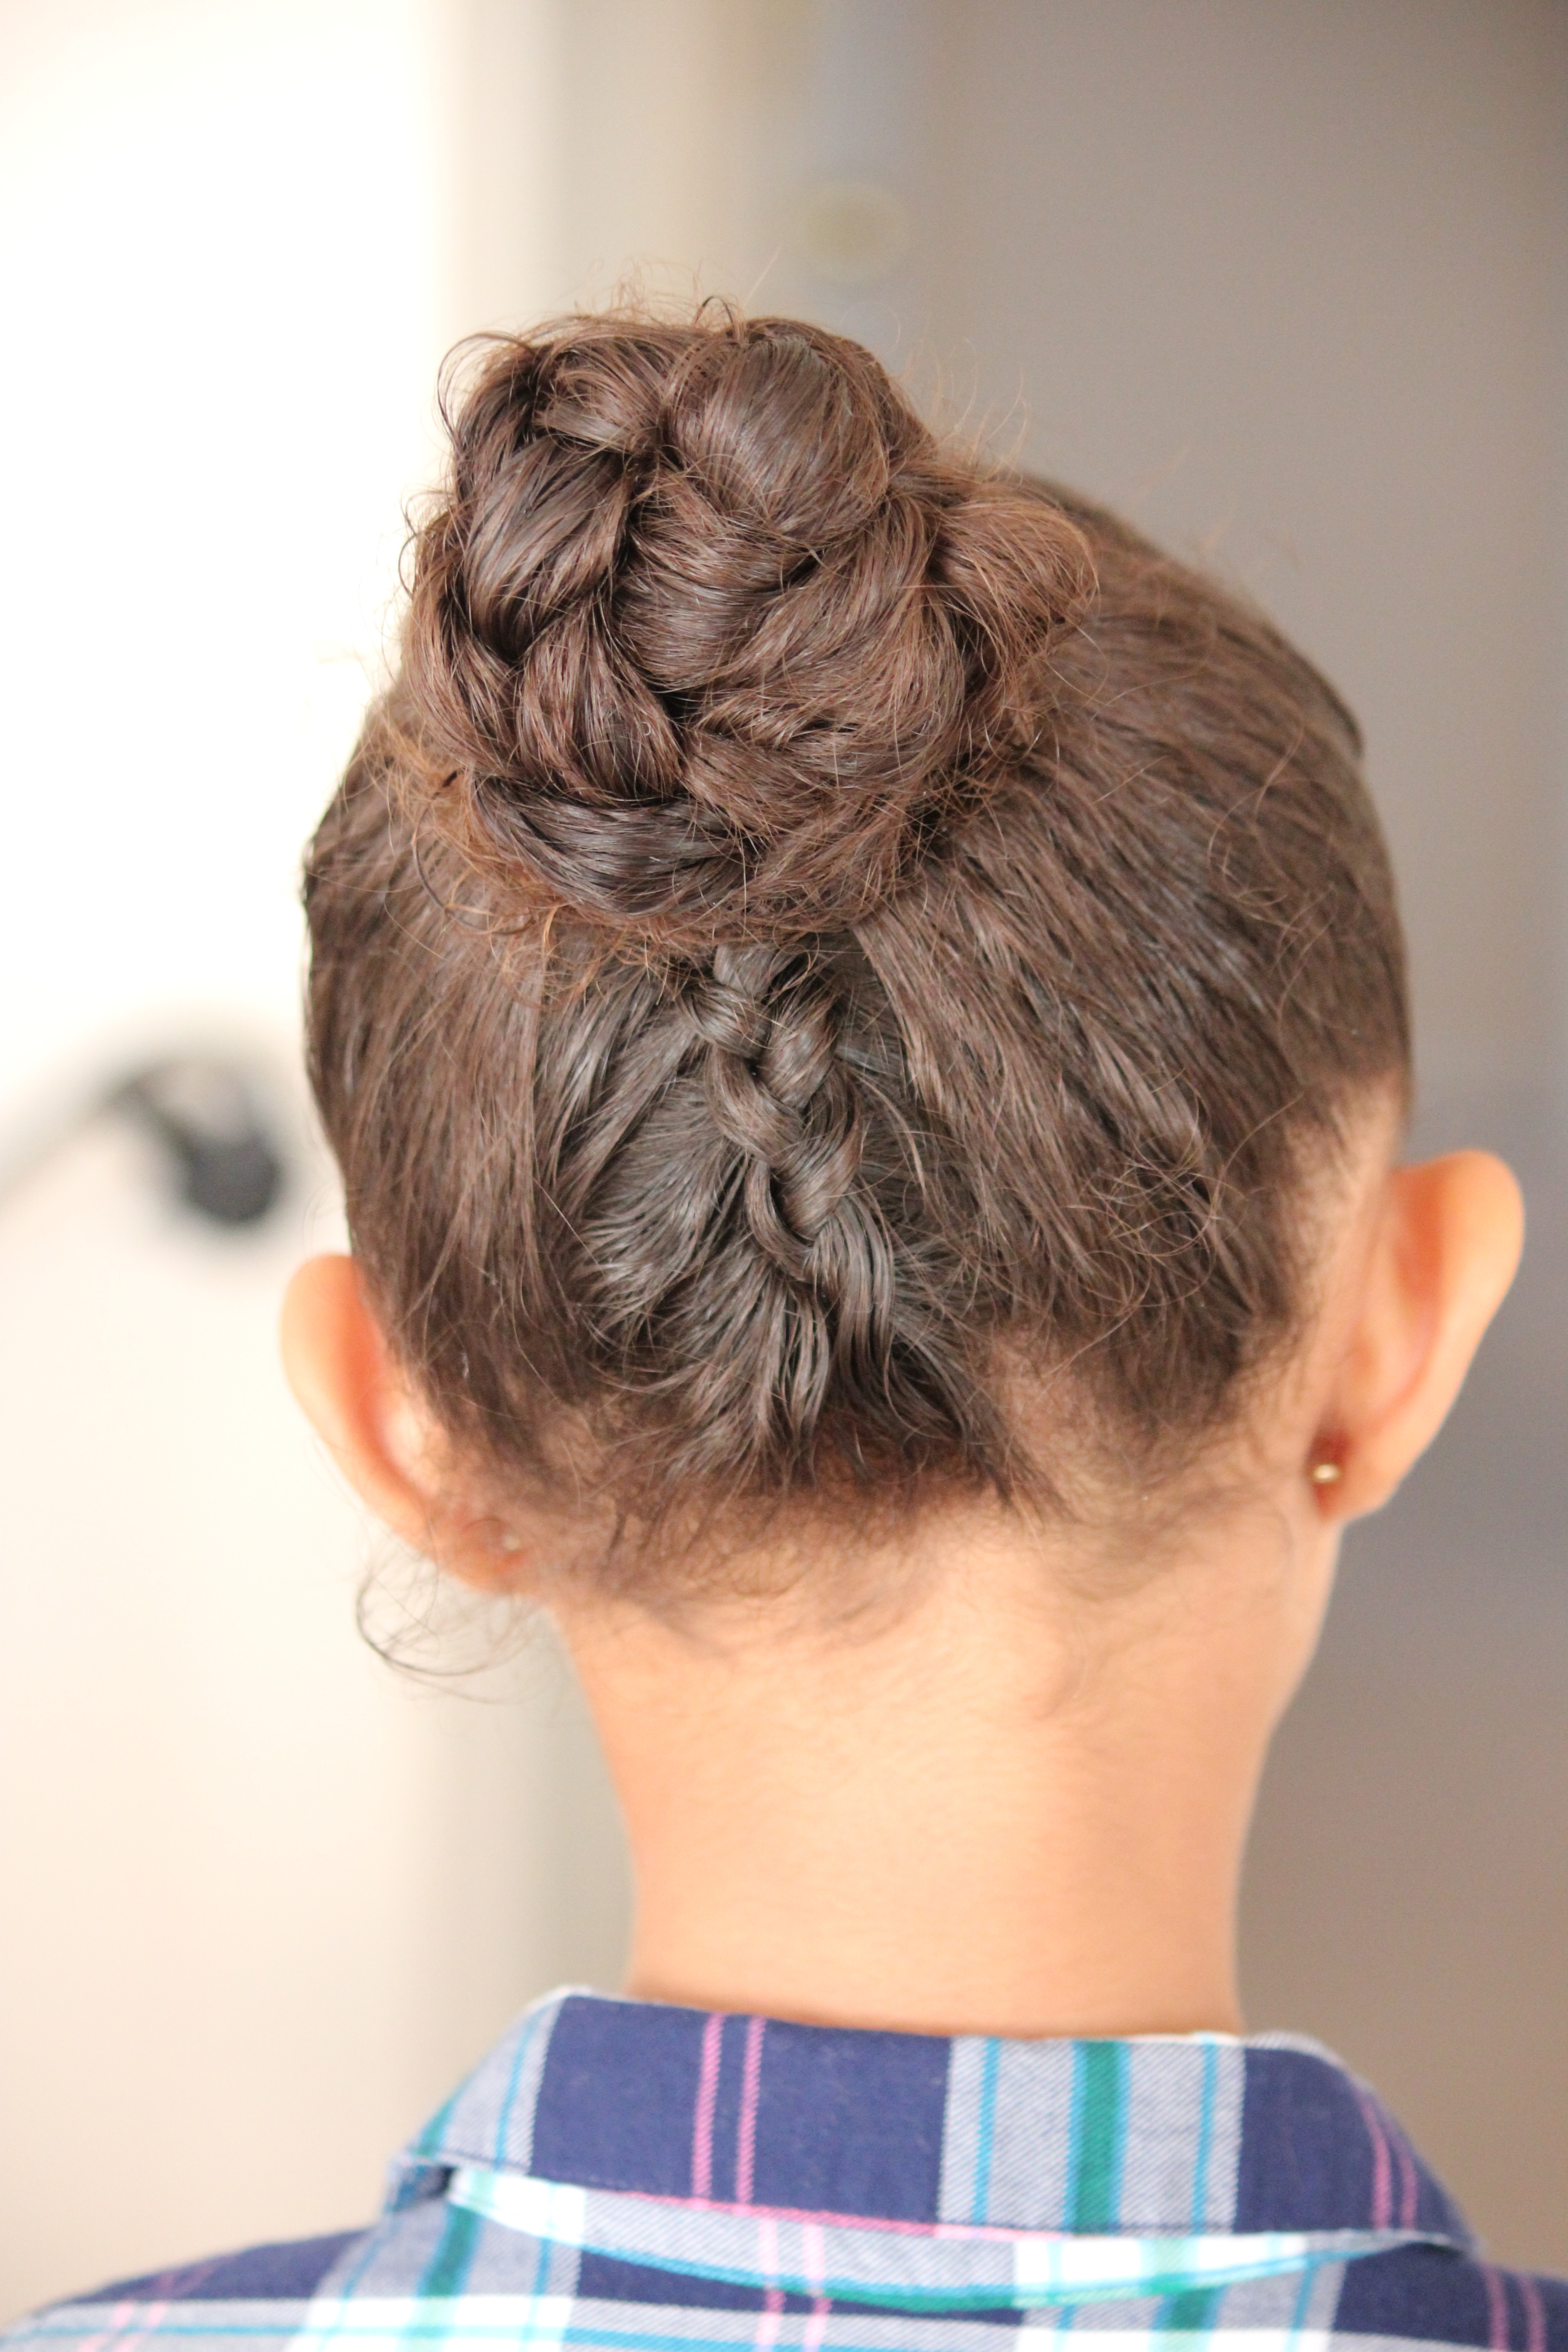 Double Dutch Braid Bun Updo Tutorial | Weather Anchor Mama Intended For Braided Bun Updo Hairstyles (Gallery 9 of 15)